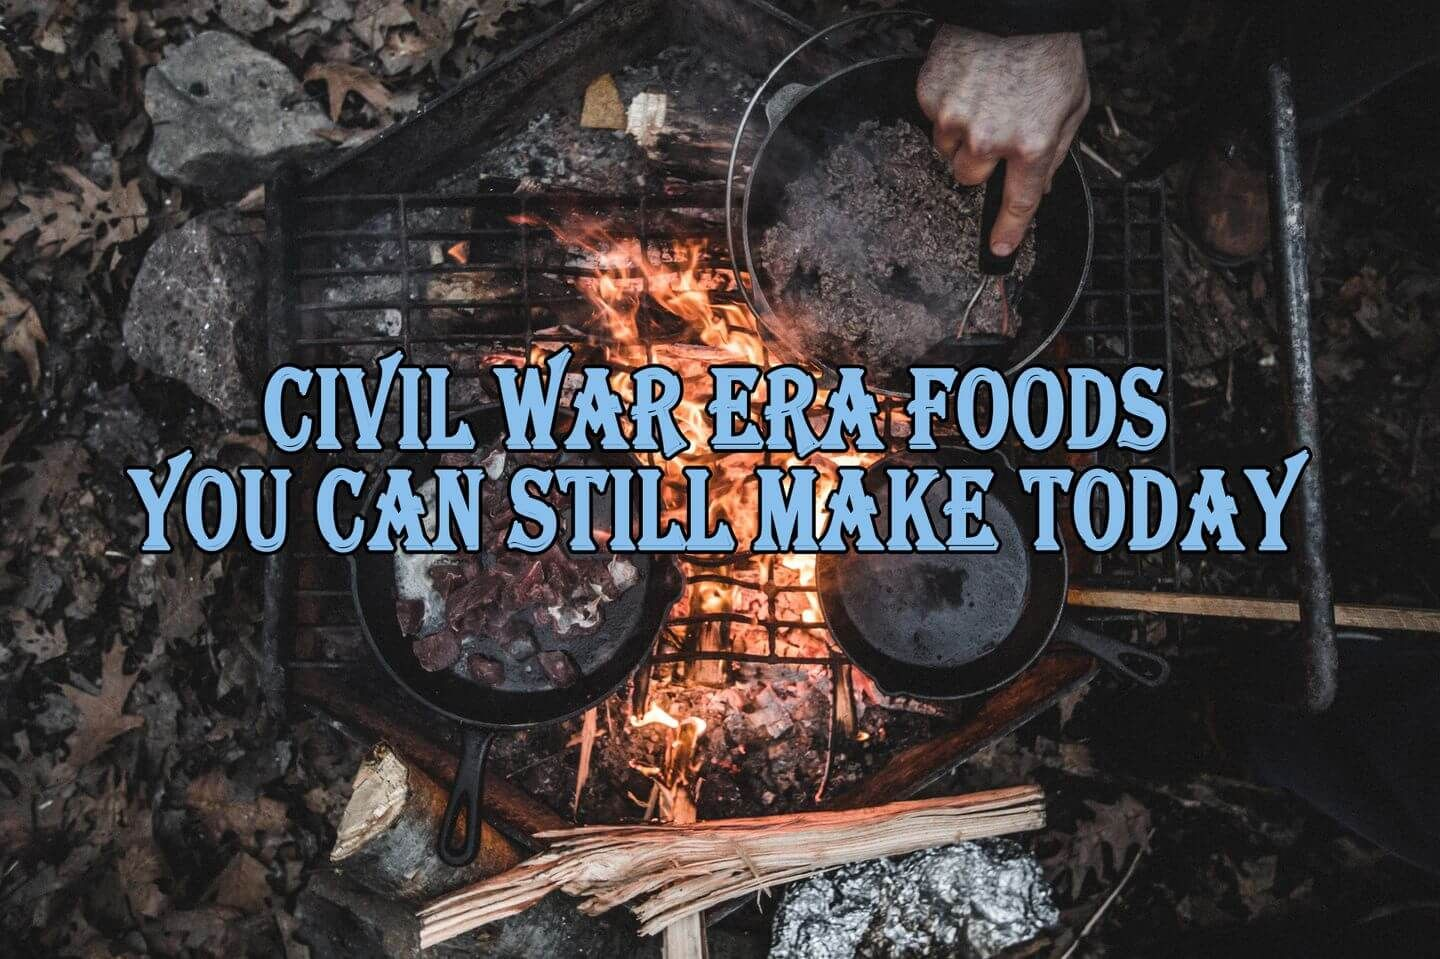 Civil War Era Foods You Can Still Make Today Survival Food War Recipe Emergency Food Supply